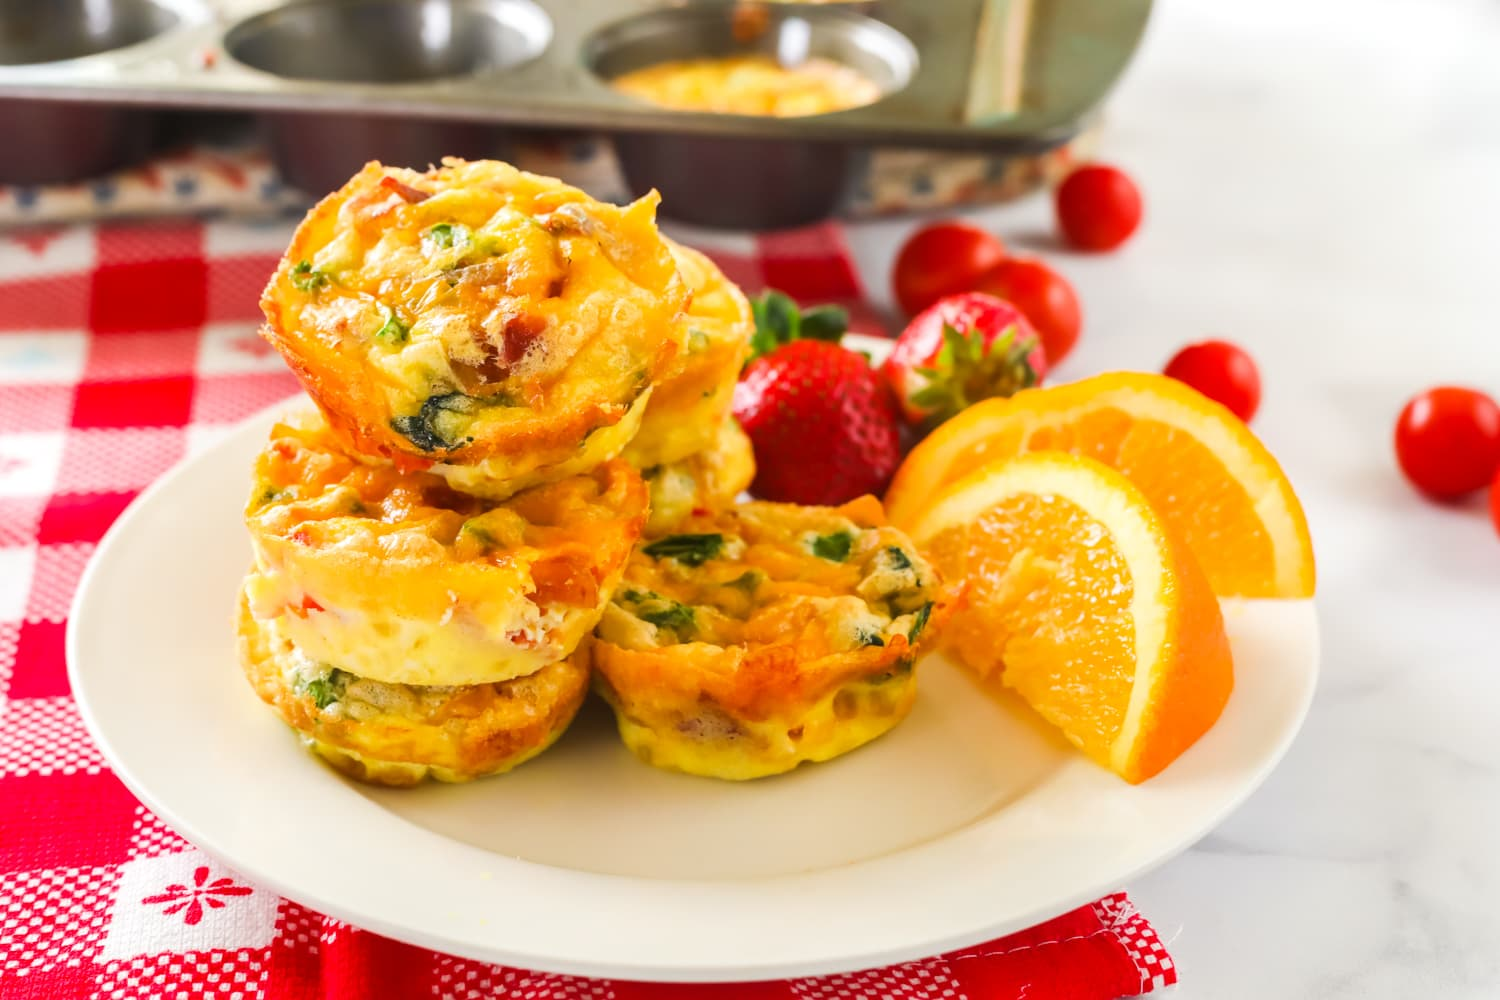 Egg muffins on a plate with fruit